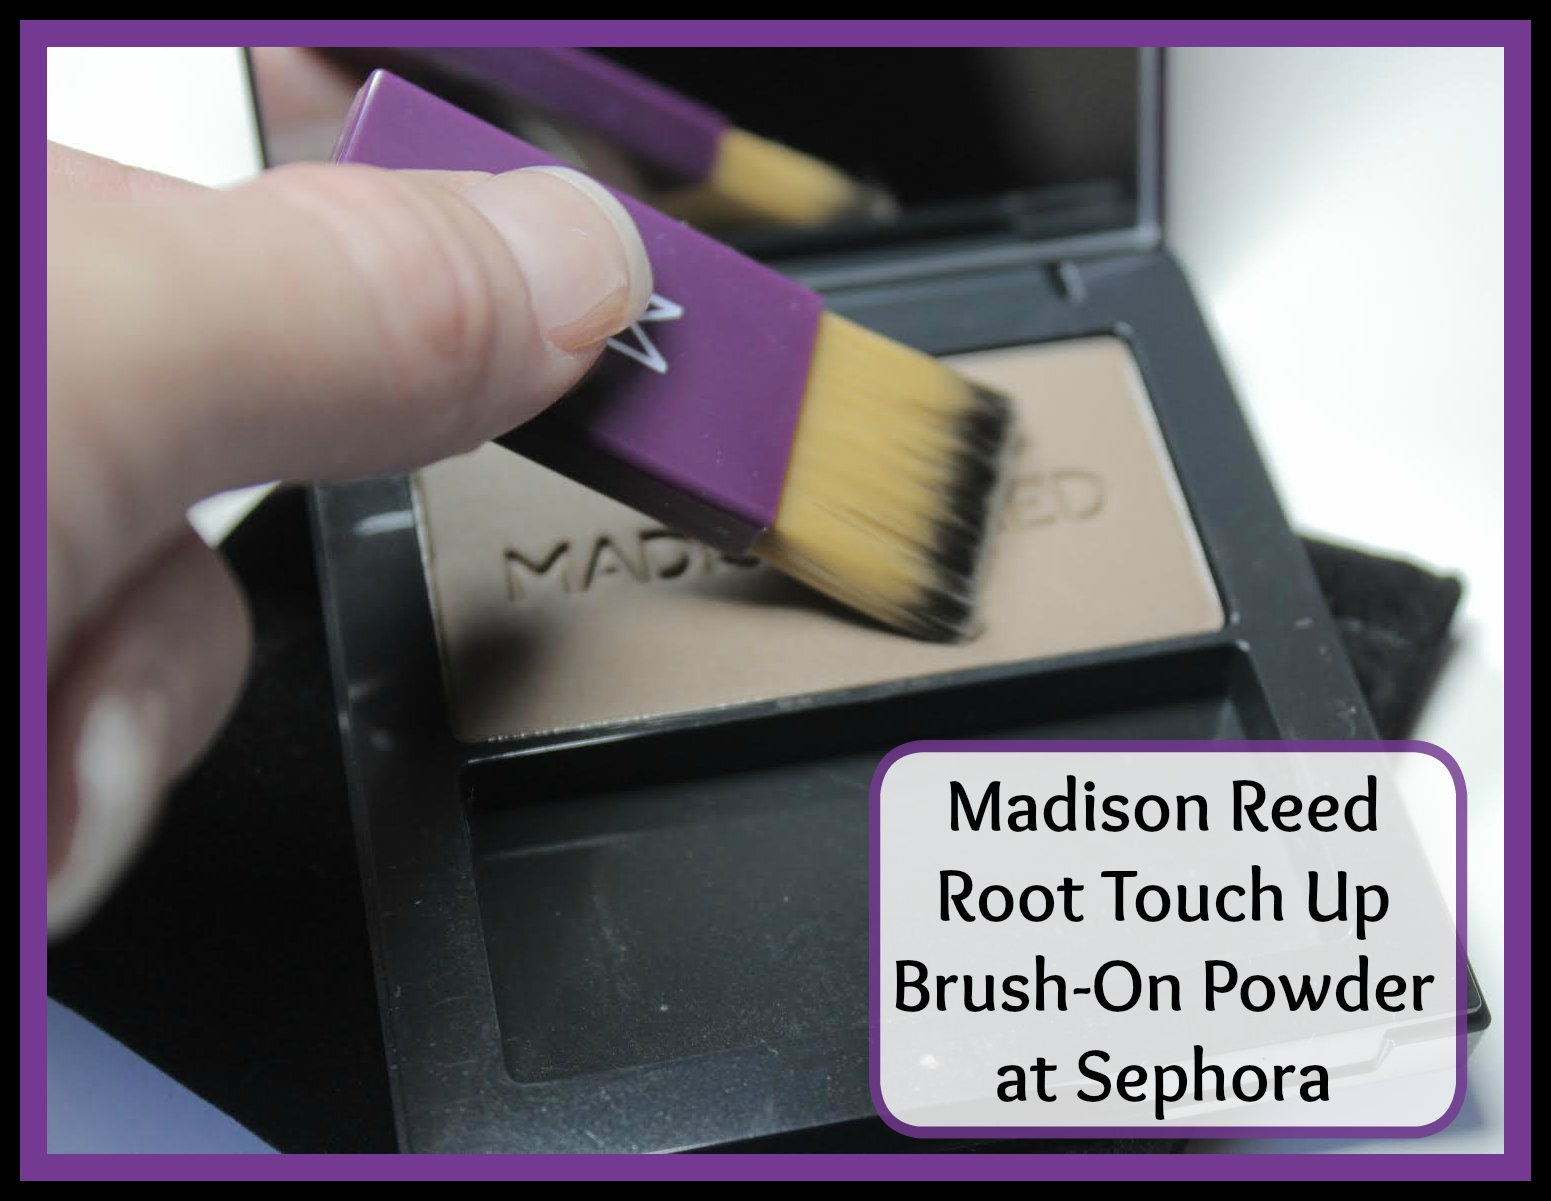 #MadisonReed #Hair #Beauty #Makeup #BBlogger #Sephora #ad